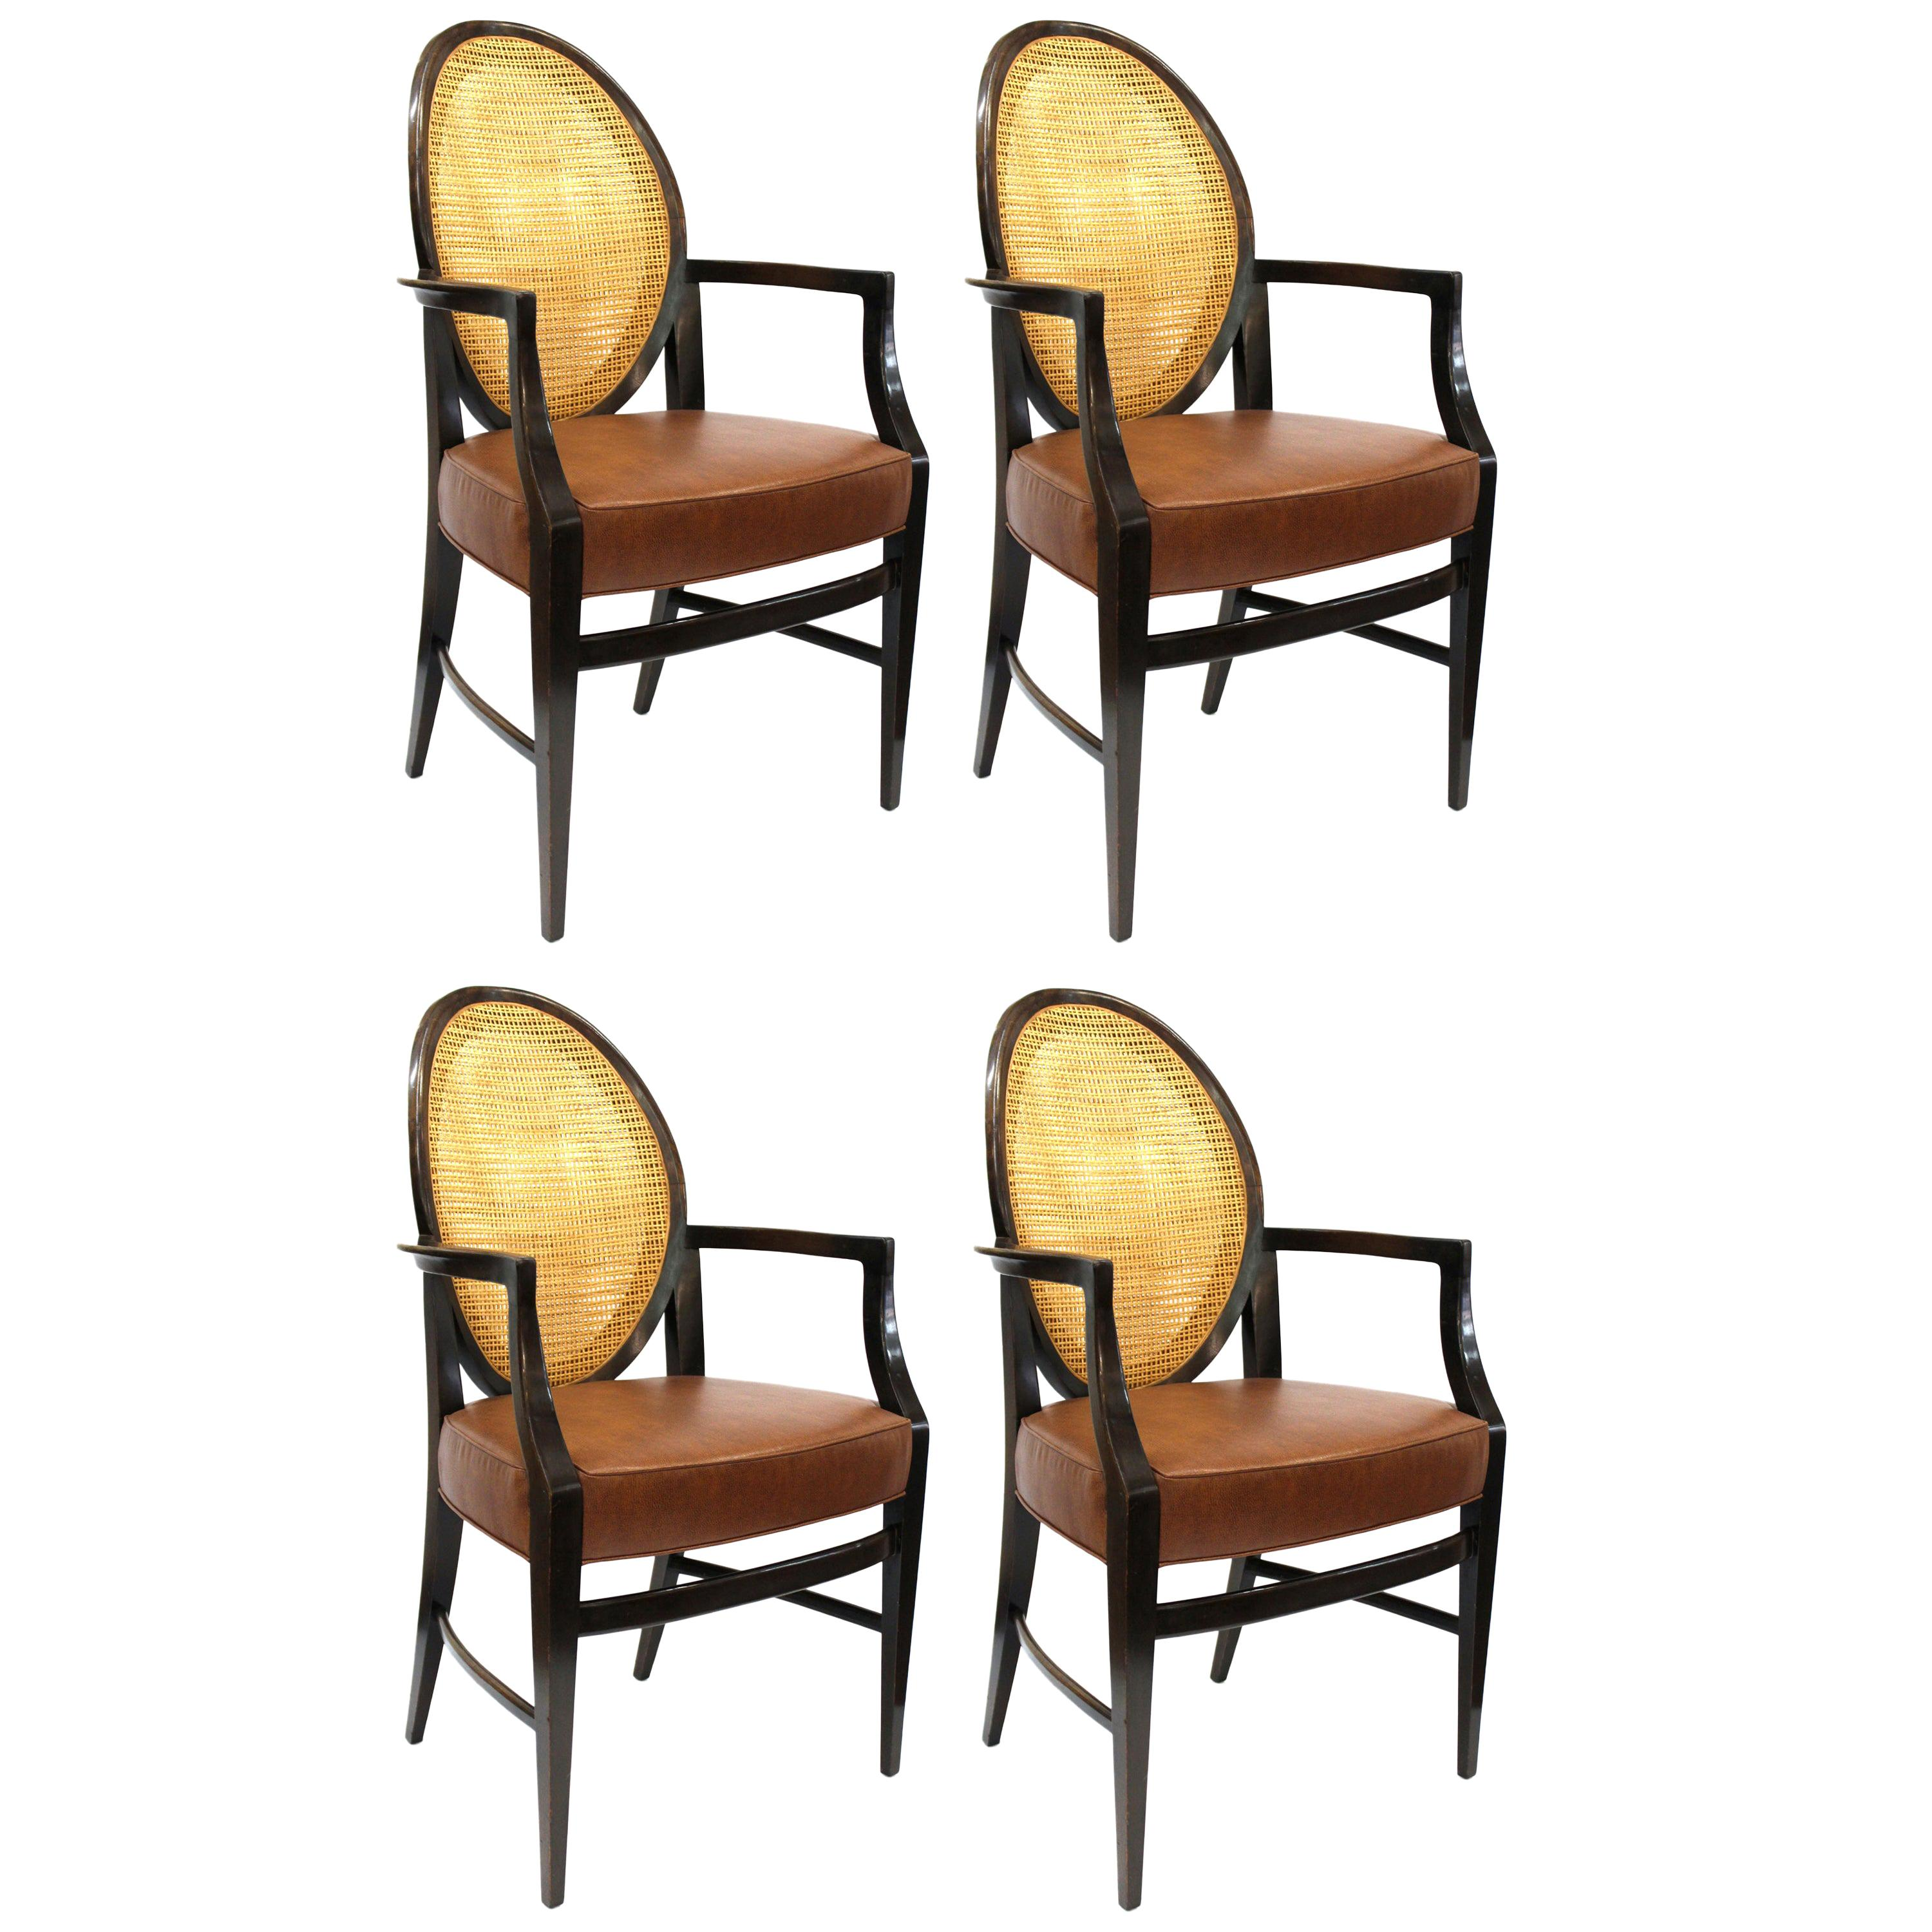 Mid-Century Modern Armchairs with Caned Backs Seat Attributed to Harvey Probber